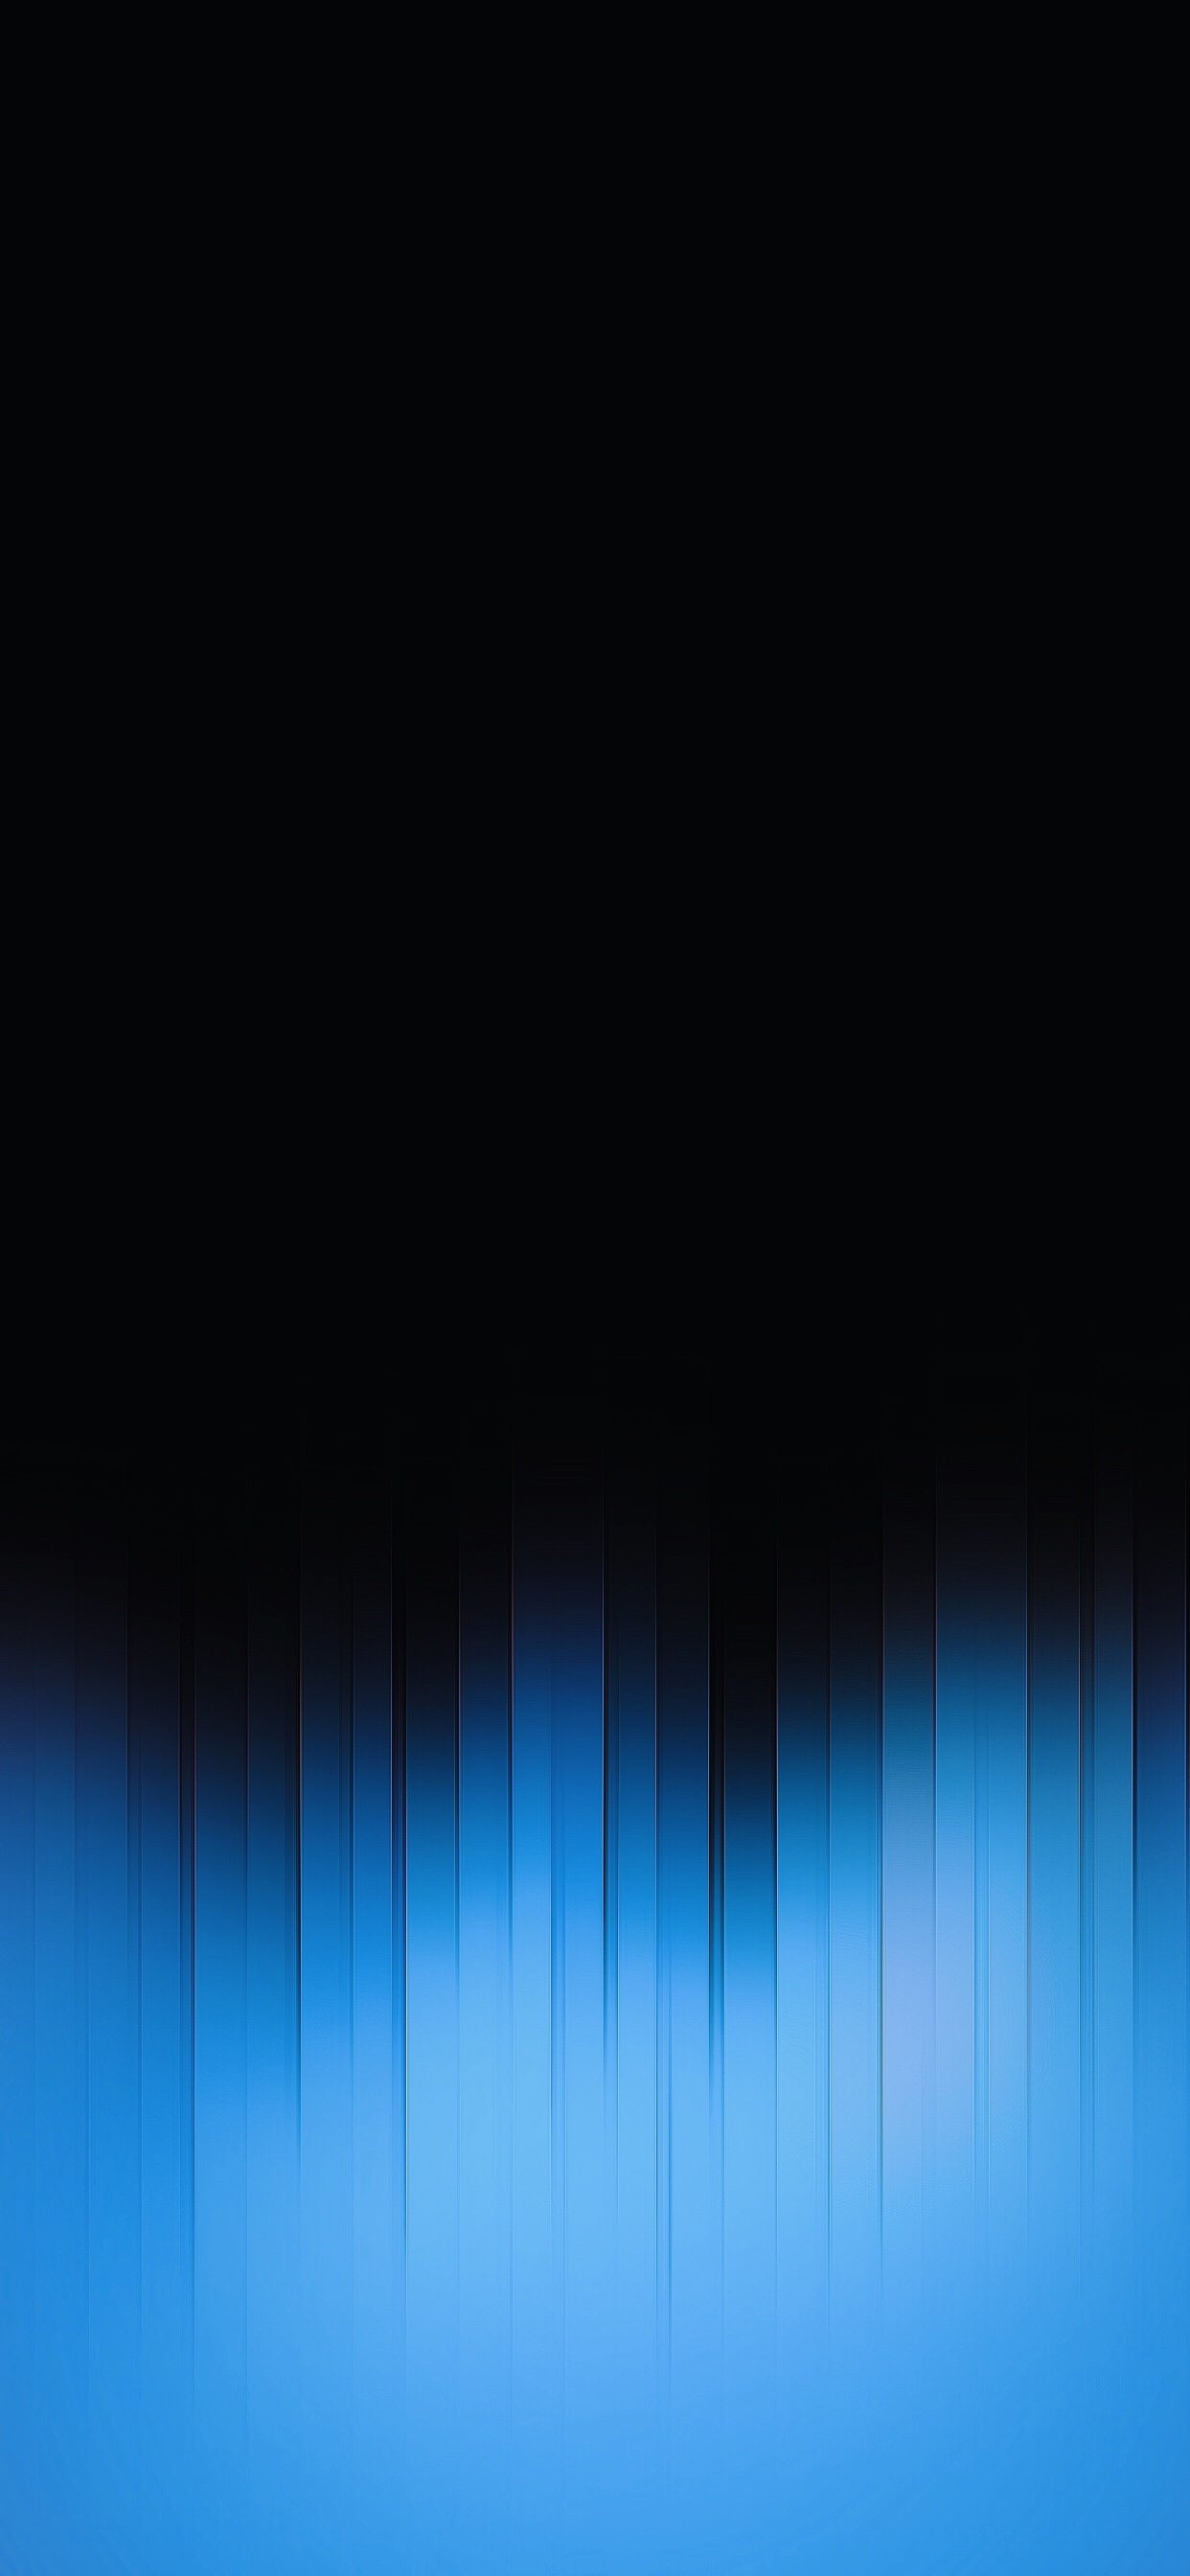 iPhone wallpaper abstract Blue Fonds d'écran iPhone du 20/12/2018